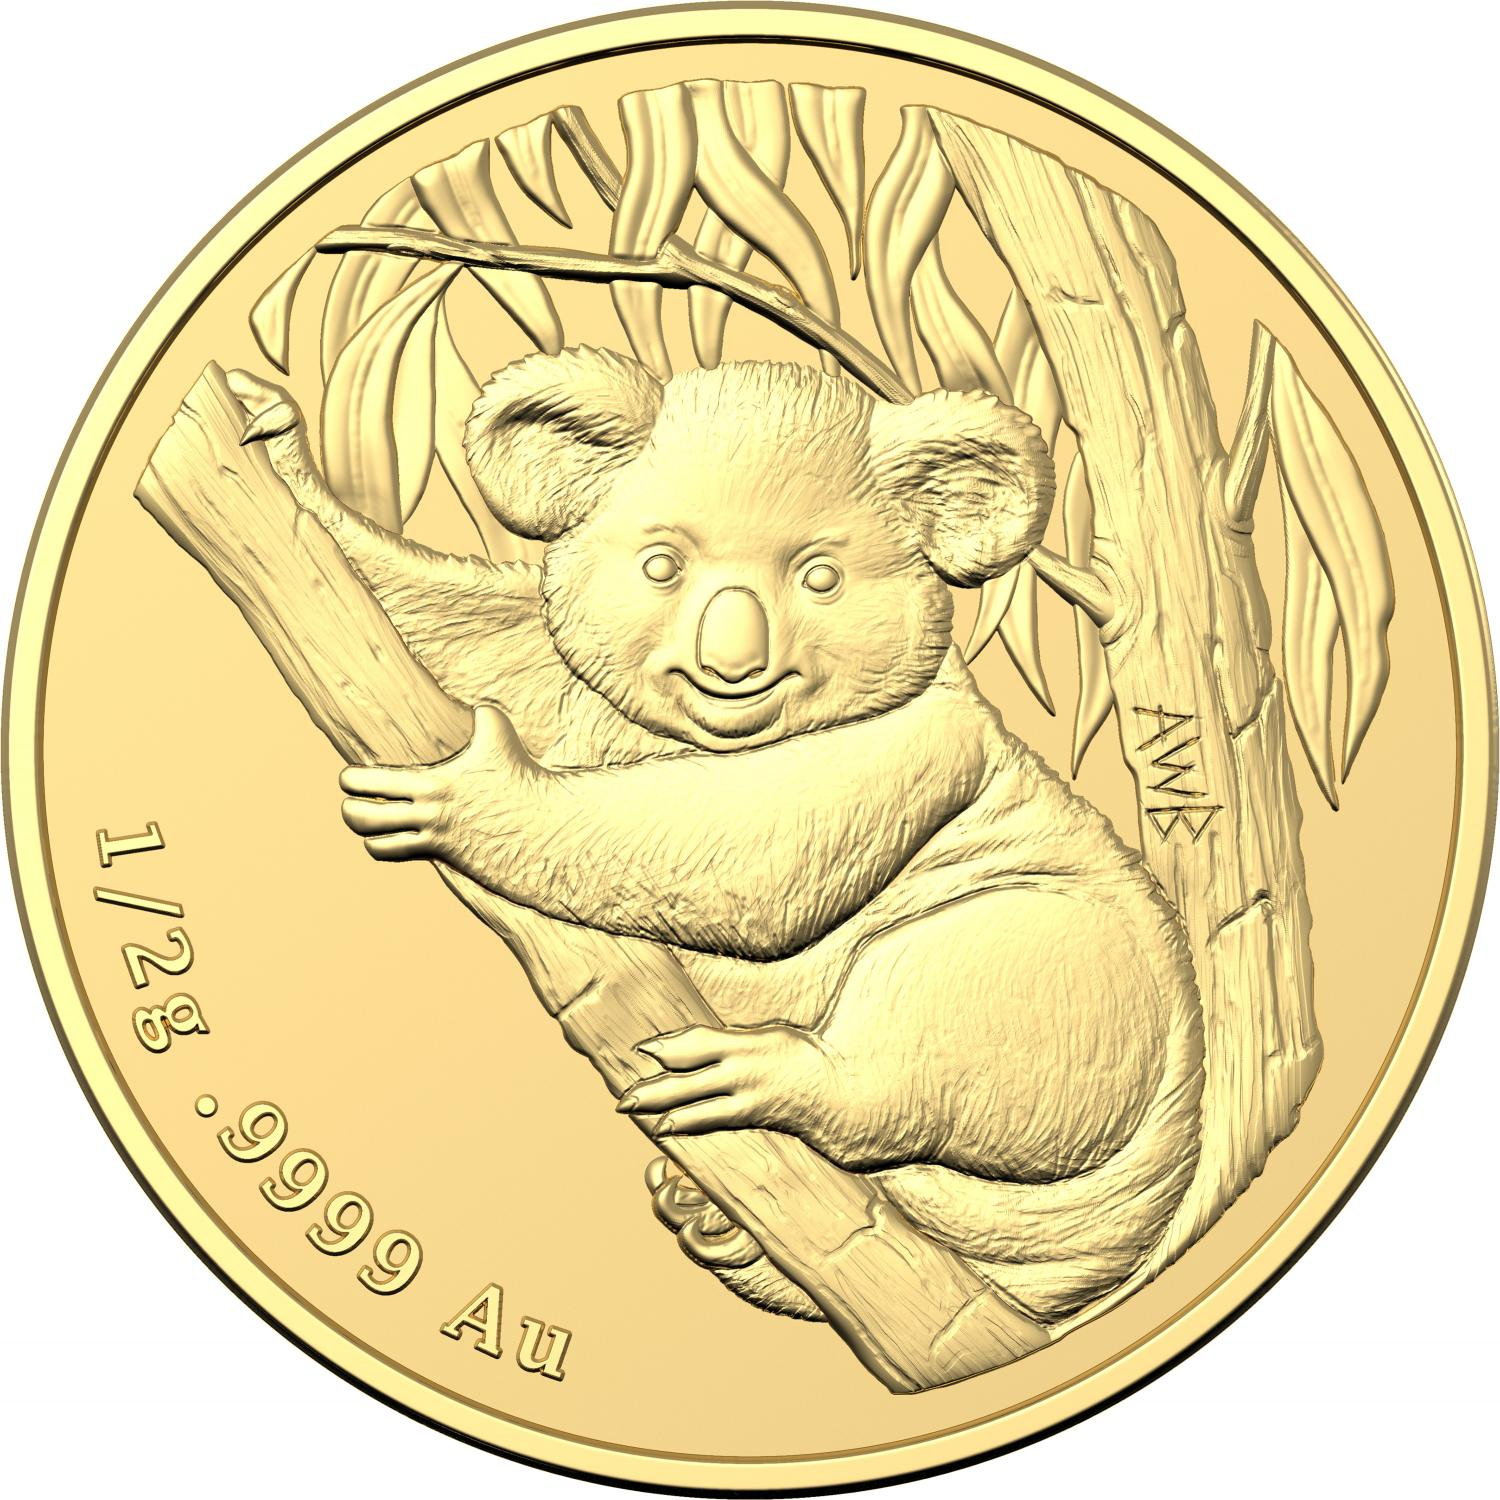 Thumbnail for 2021 $2 Koala Mini Half gm Frosted UNC Gold Coin - Mintage 5000